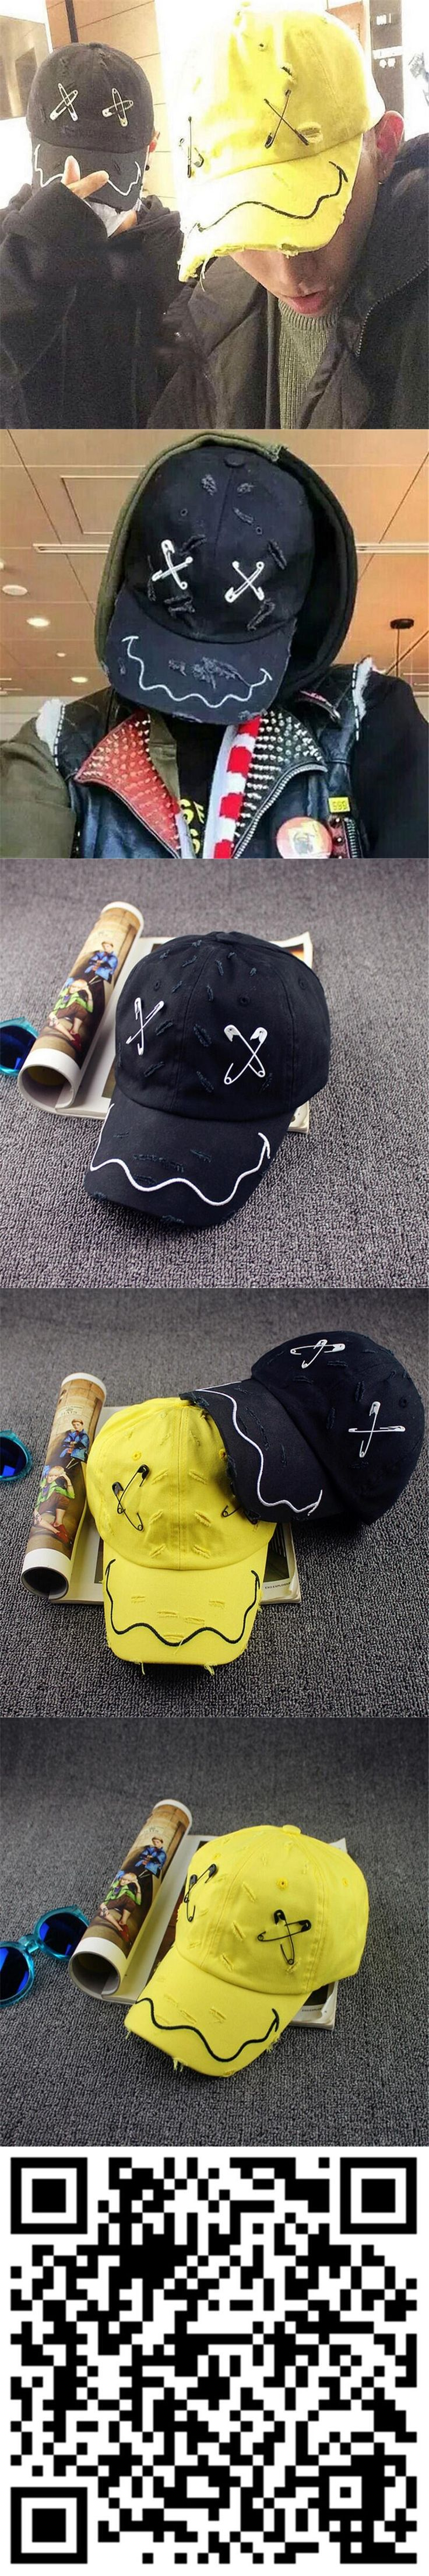 2016 new Gd unisex solid Ring Safety Pin curved hats fashion hoop baseball cap men women snapback caps sport casquette gorras